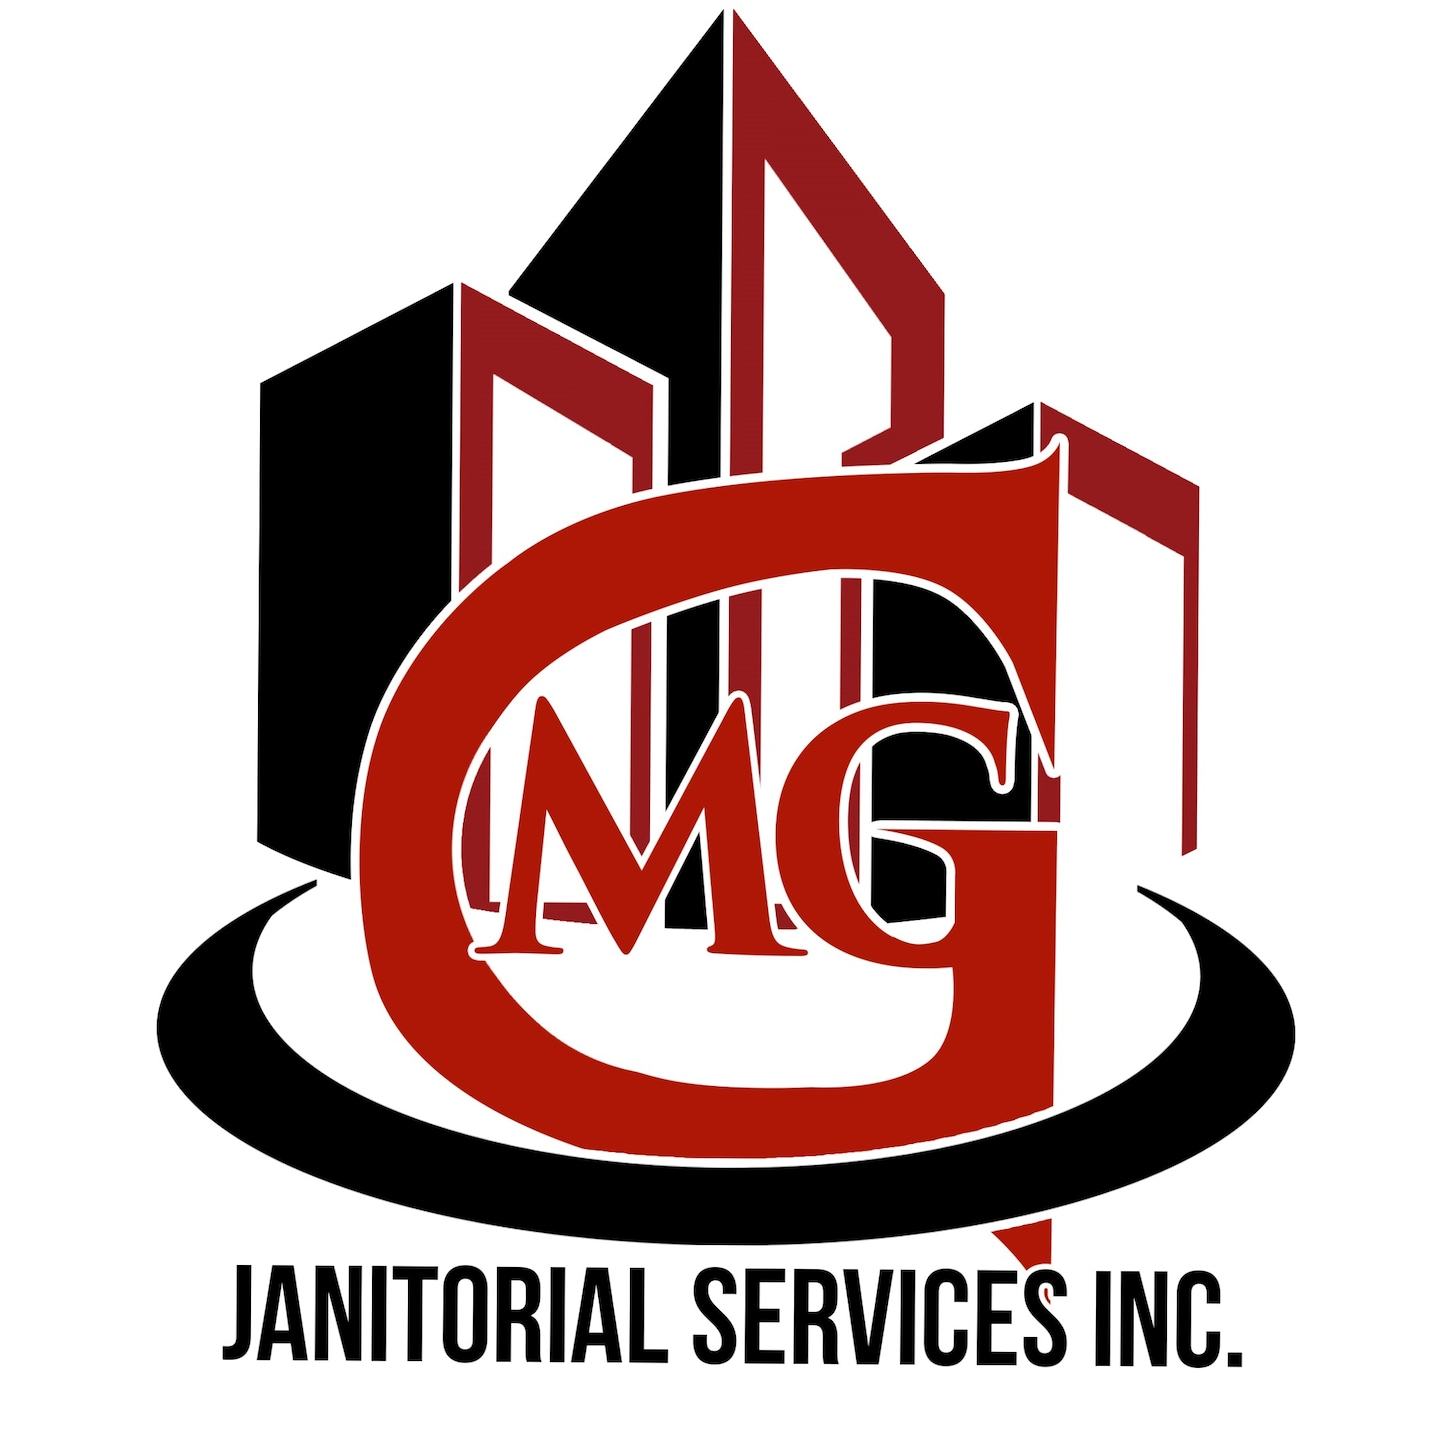 MG Janitorial, Inc